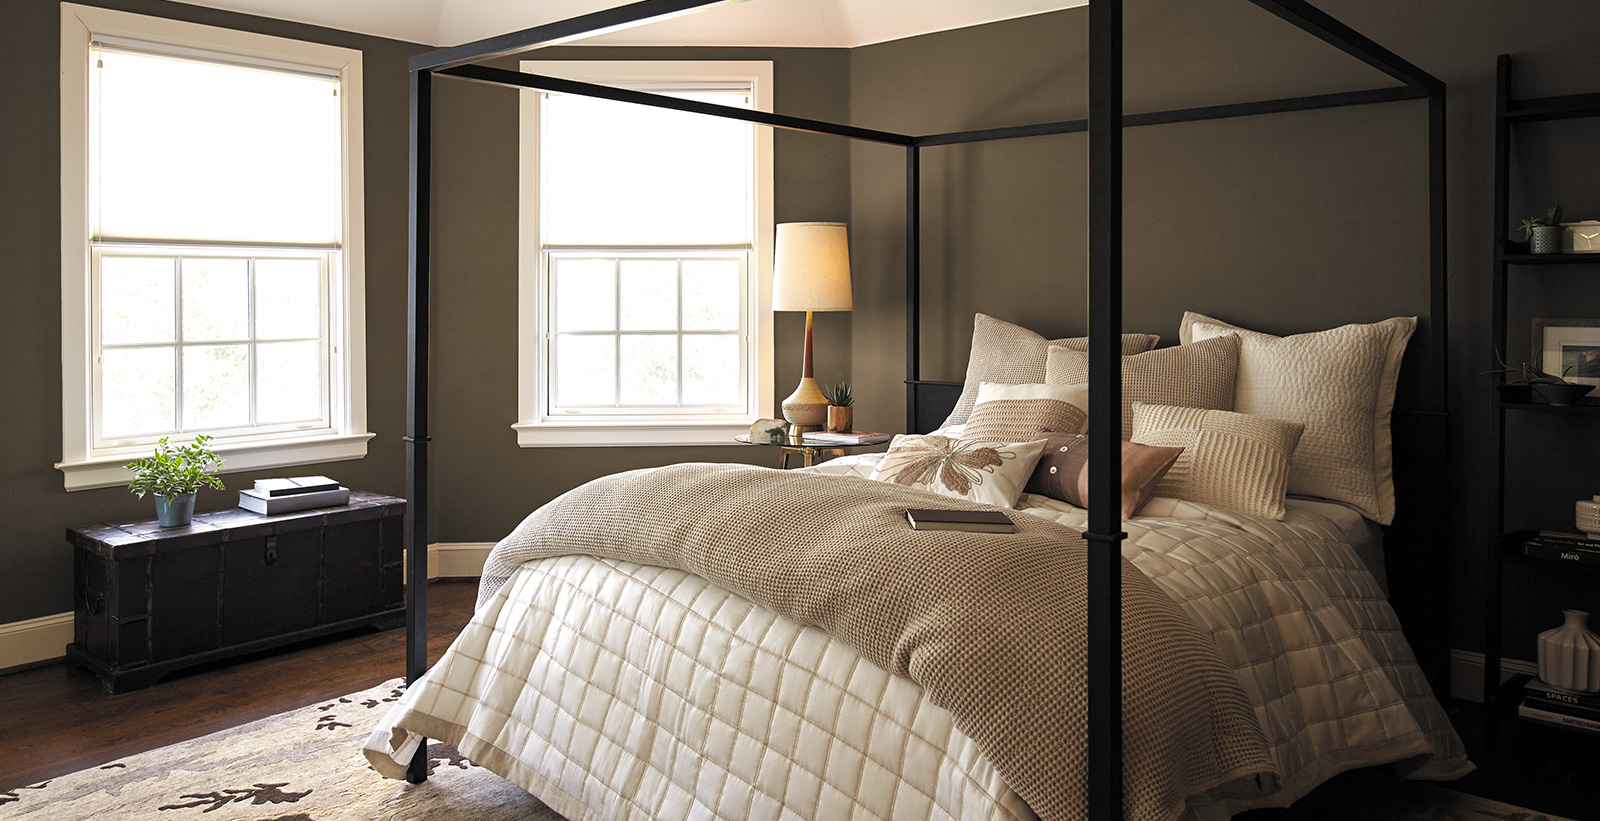 Contemporary bedroom with muted brown on walls, white on trim and ceiling, and neutral bedding on metal 4 poster bed